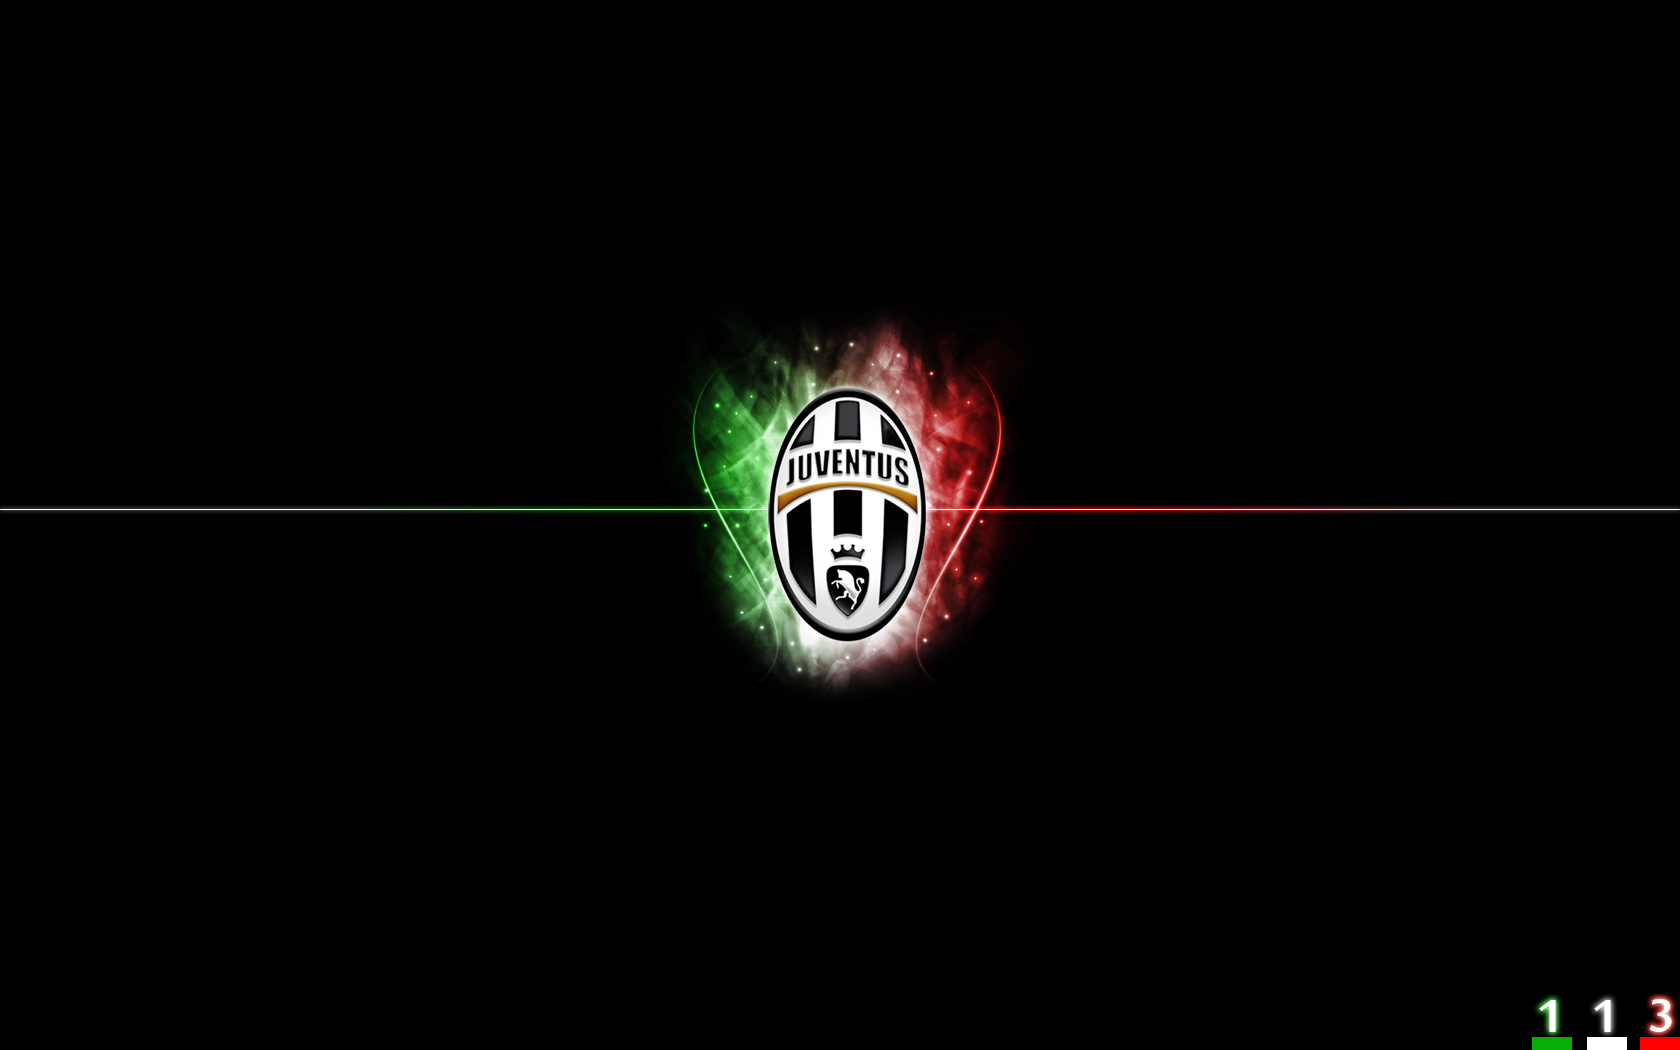 Juventus Wallpaper Iphones HD